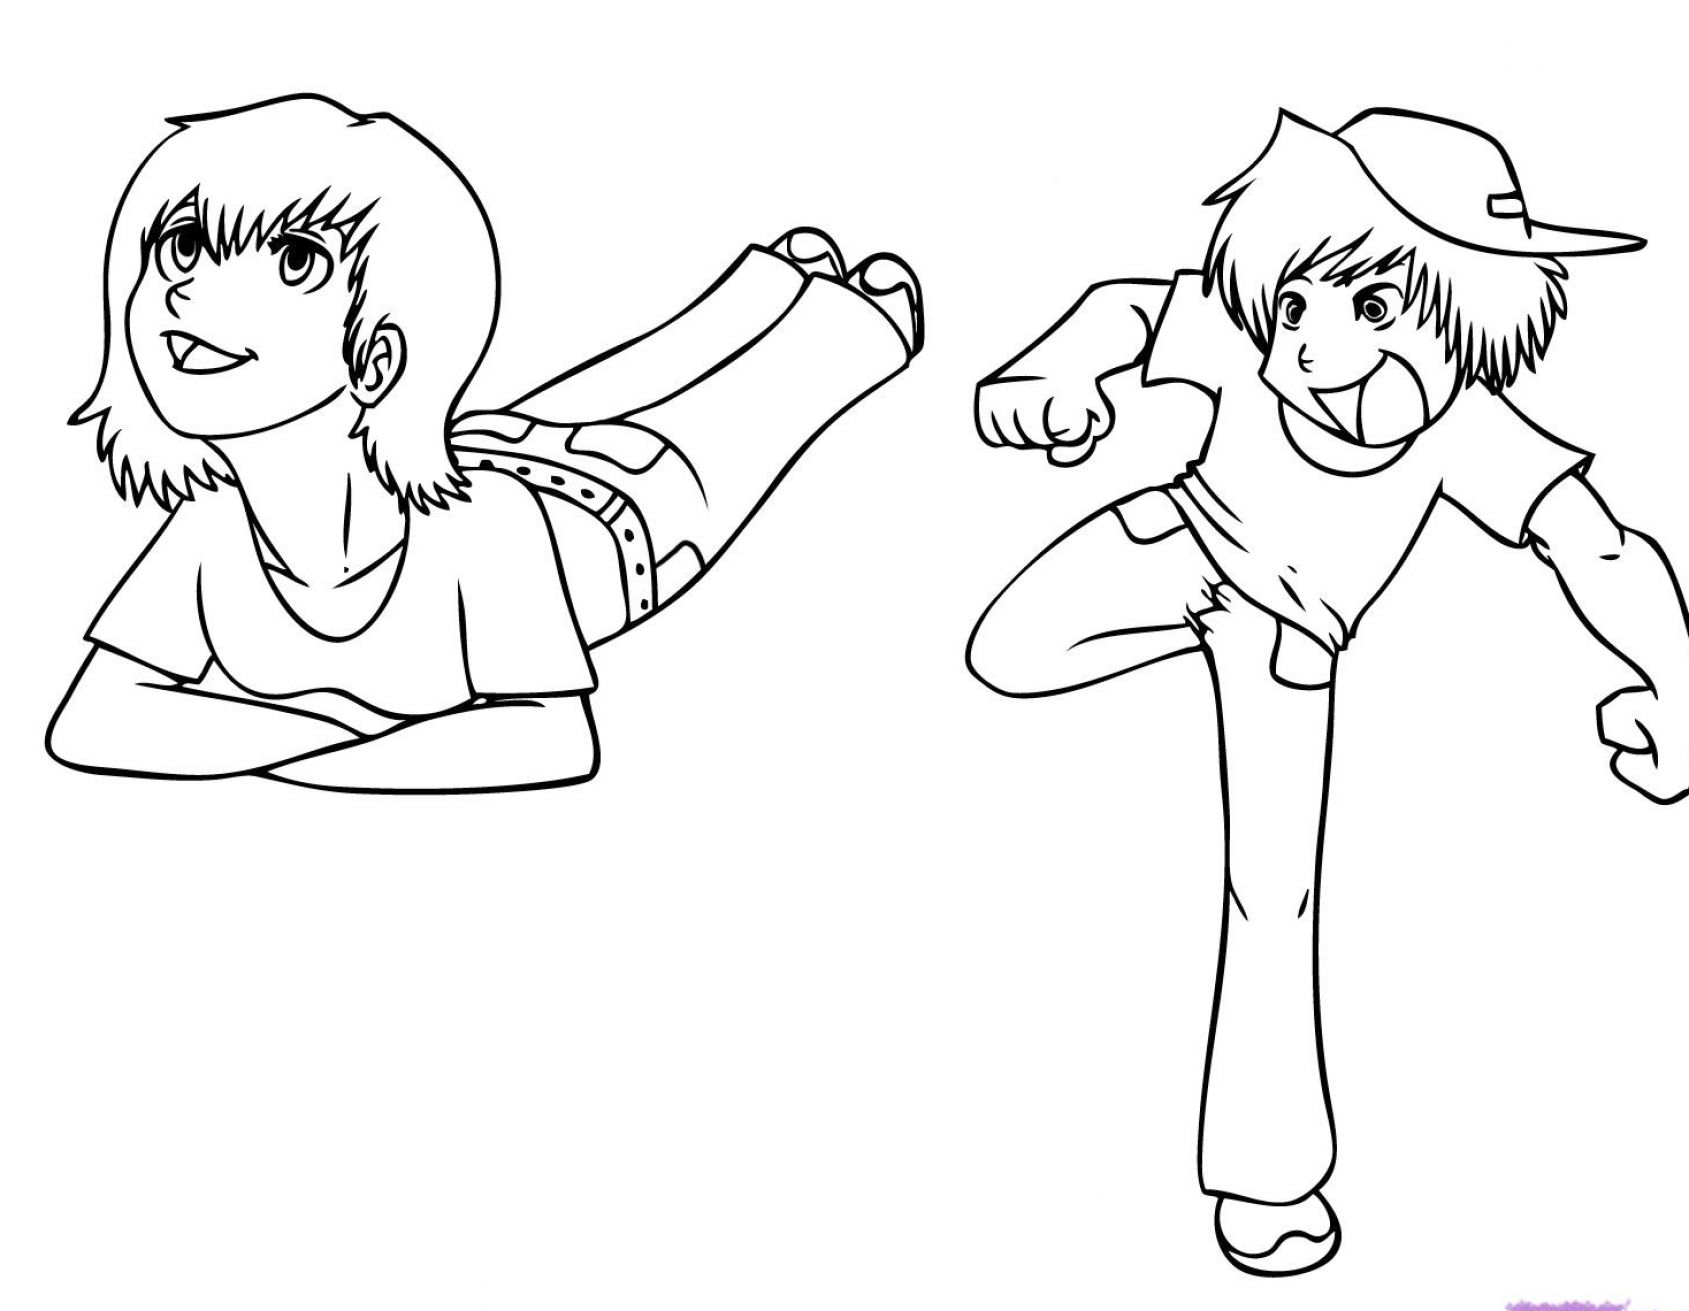 Drawing Lines Xcode : How to draw people kids